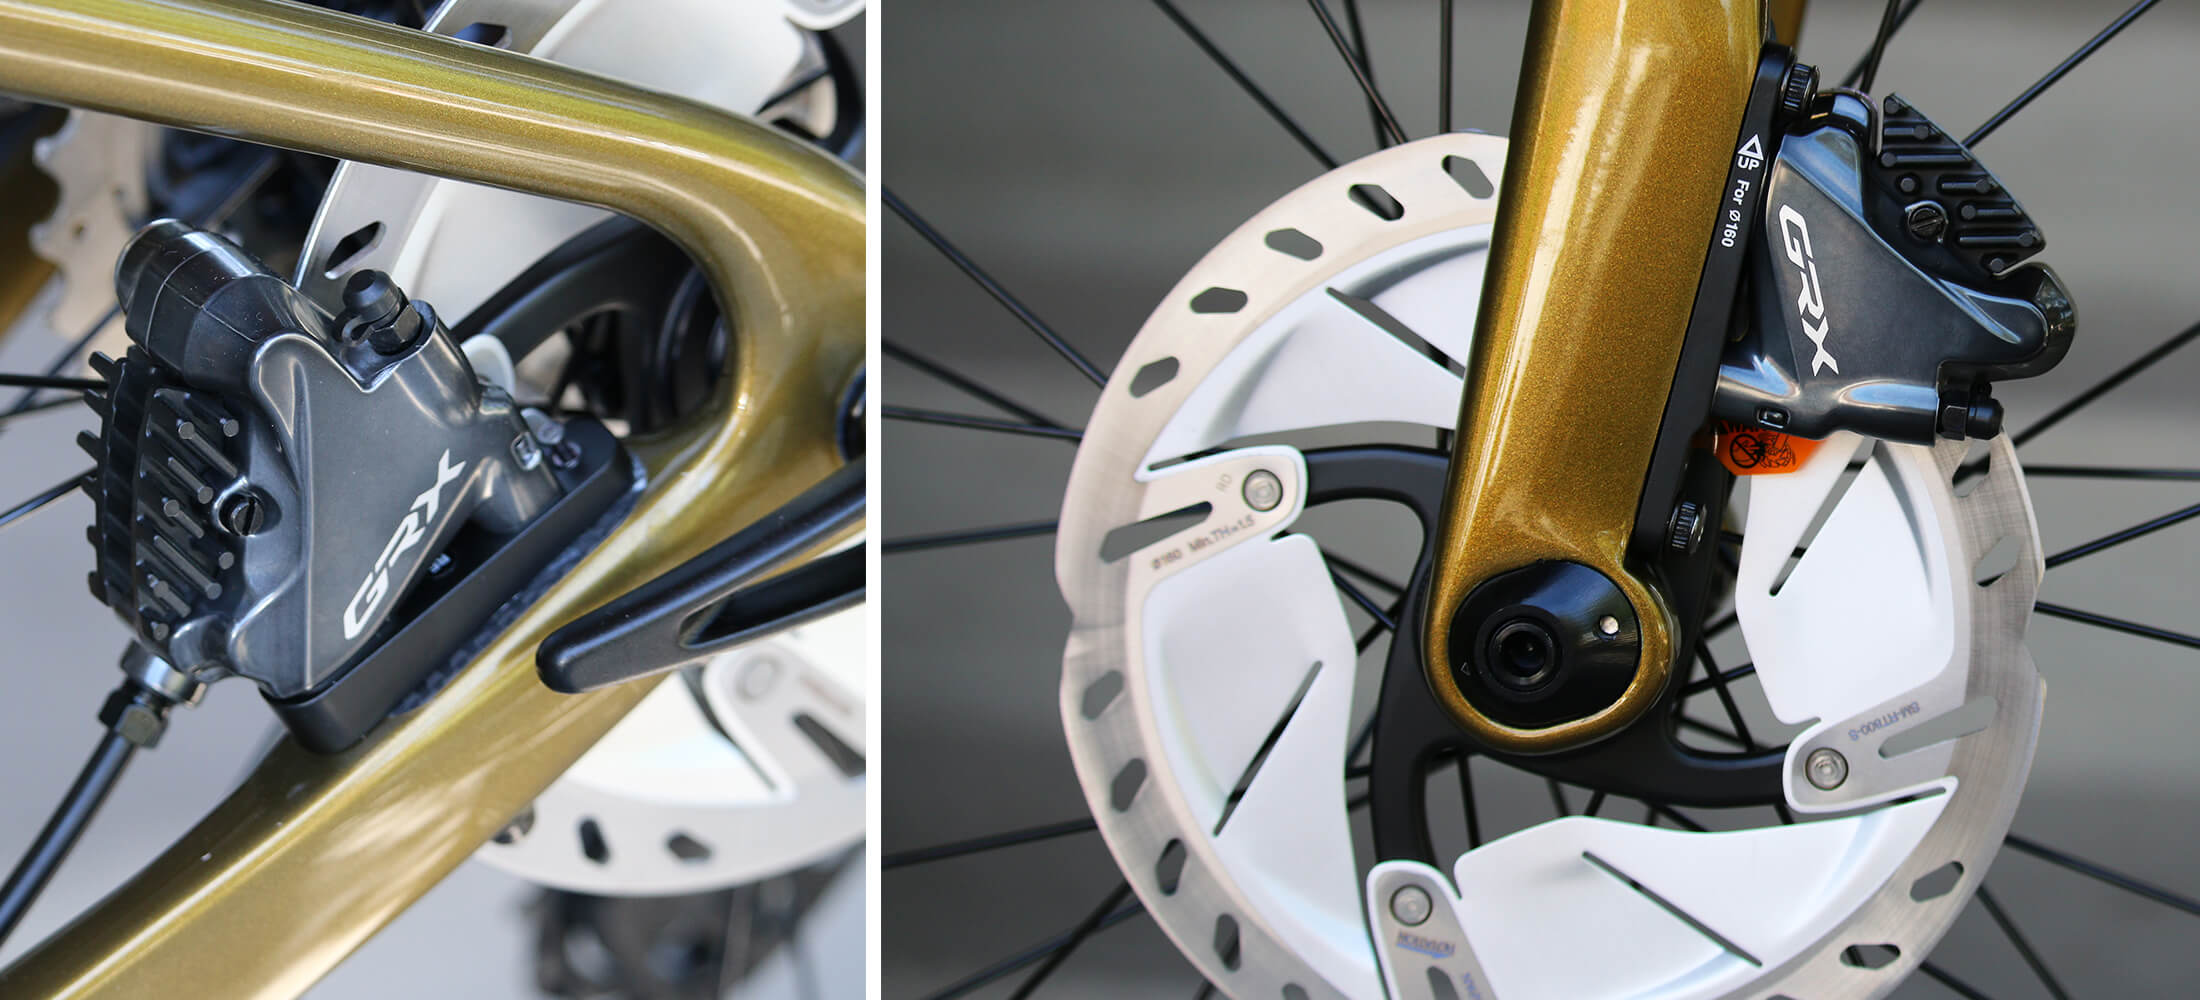 Shimano GRX Groupset - Contender Bicycles - Brakes